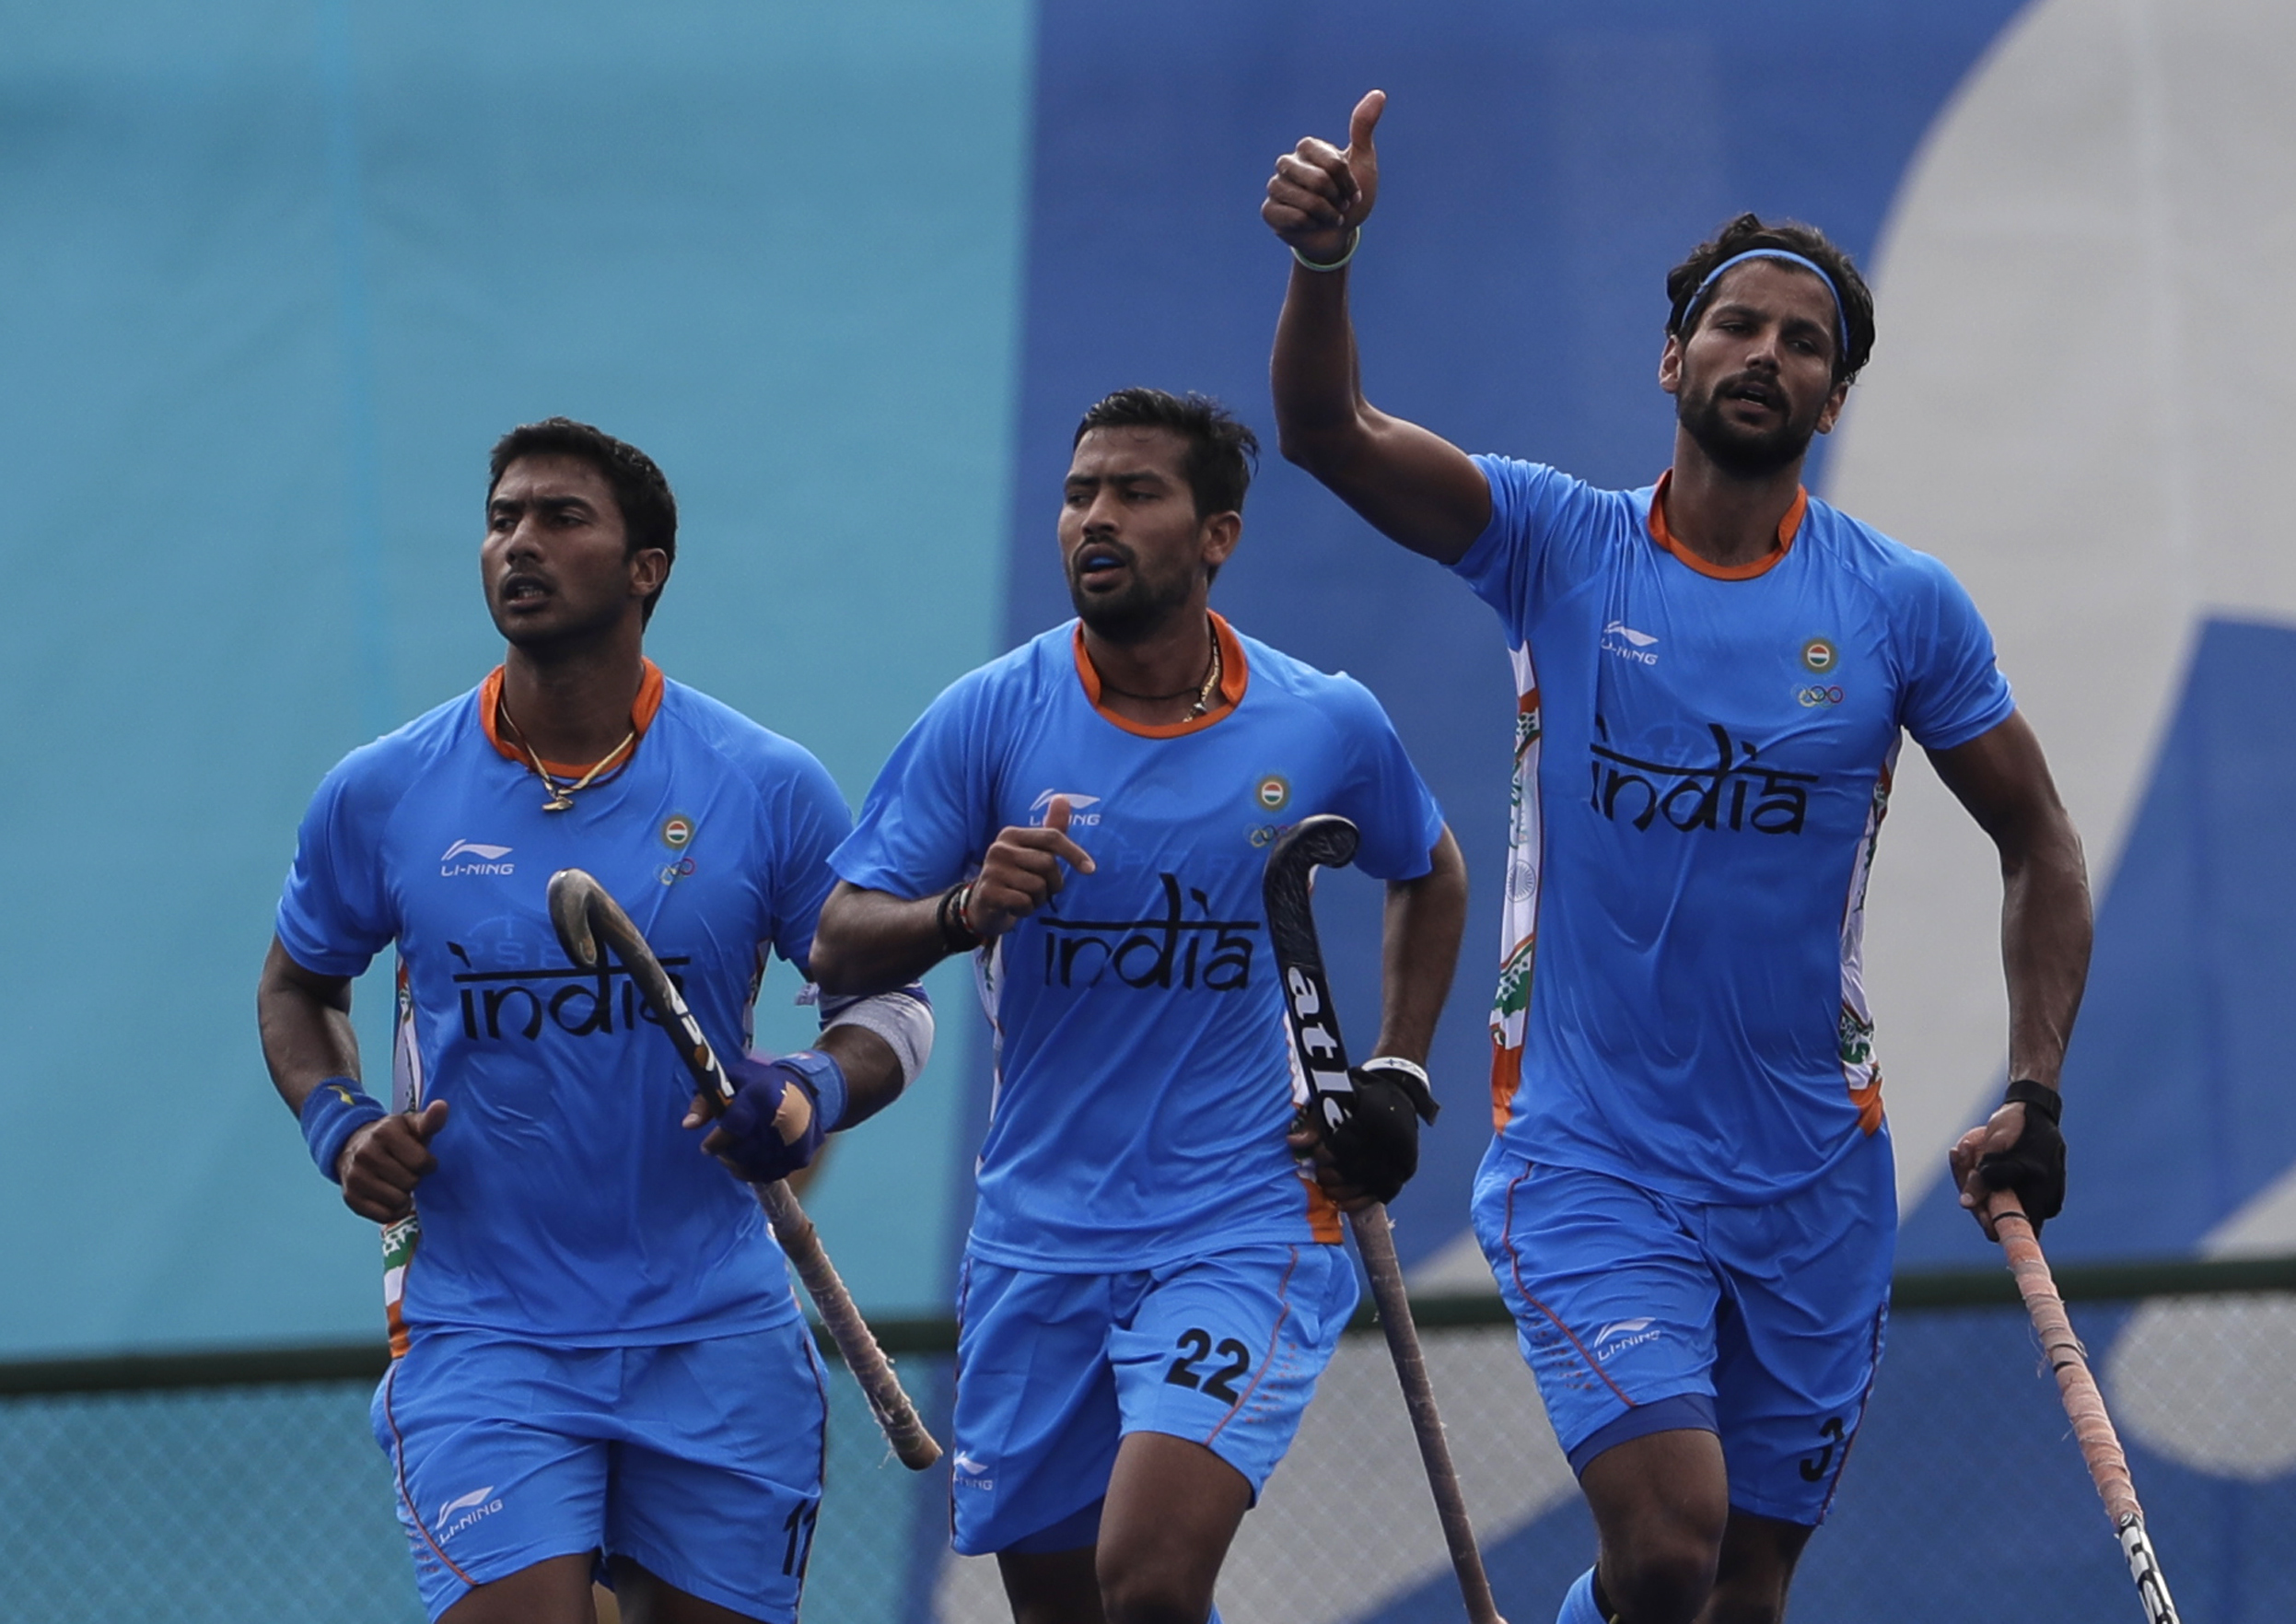 India's Rupinder Pal Singh, right, celebrates his goal against Germany during a men's field hockey match at 2016 Summer Olympics in Rio de Janeiro, Brazil, Monday, Aug. 8, 2016. (AP Photo/Hussein Malla)